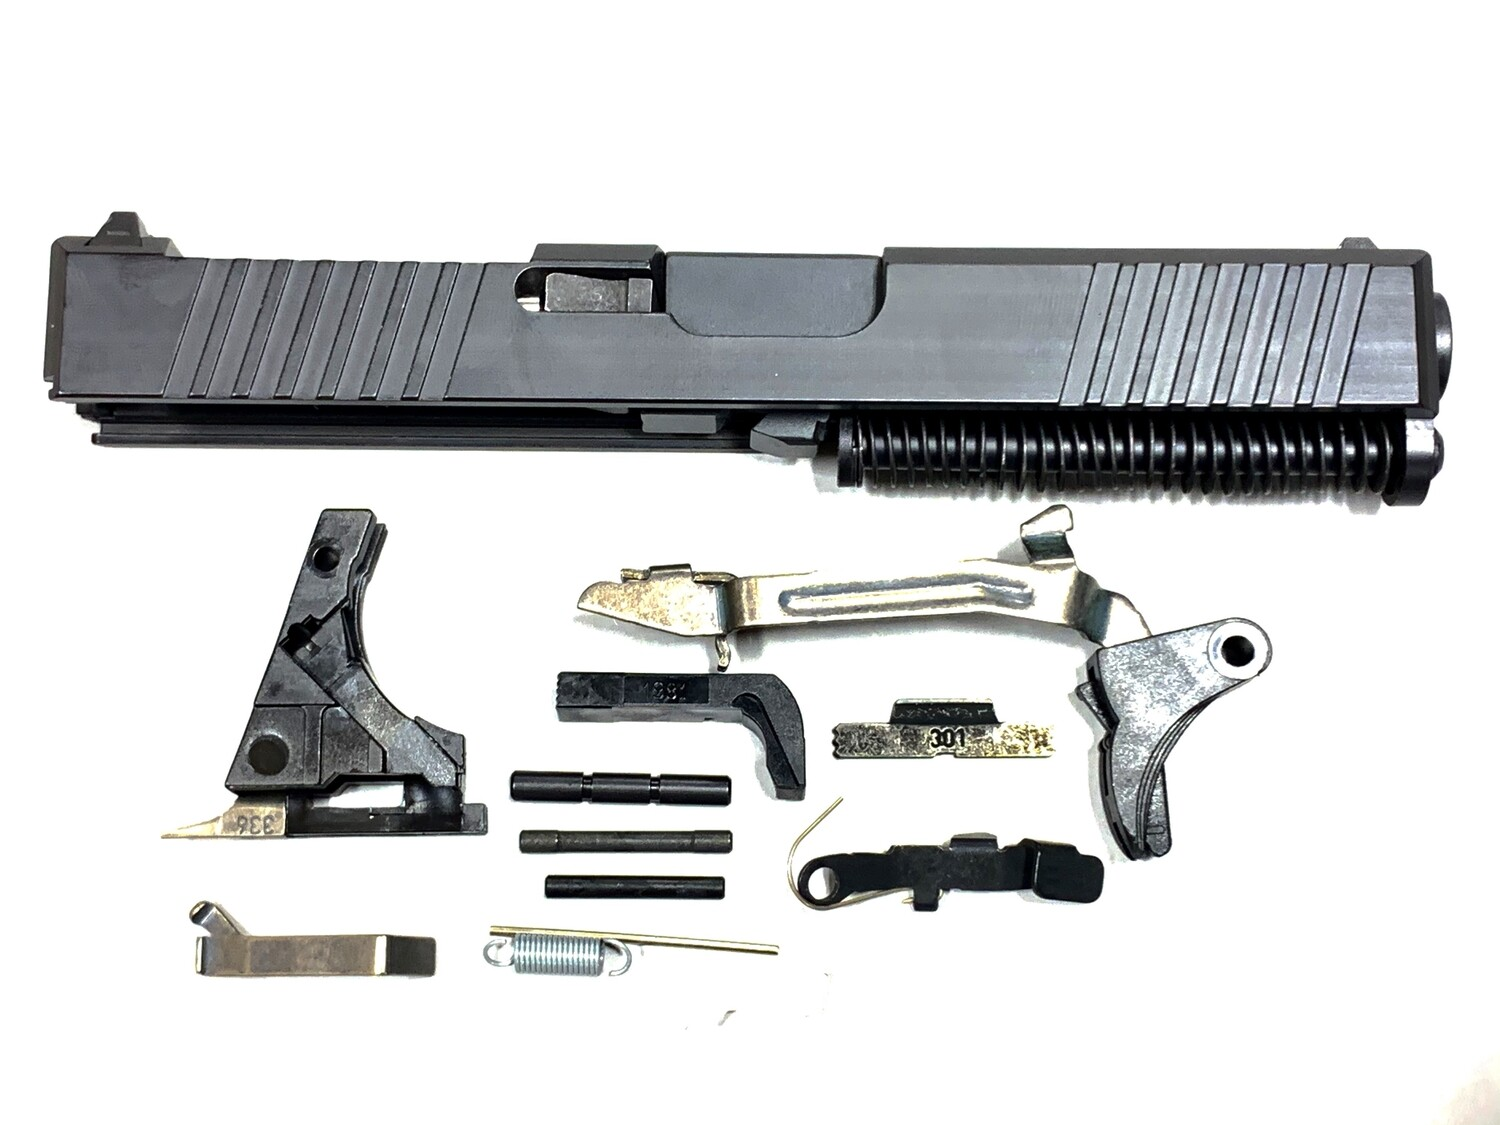 Glock 19 Complete Built Slide w/ Rear & Front Serrations - RMR Trijicon Cut - Color Black - Comes With Glock OEM Lower Parts Kit - Free Shipping